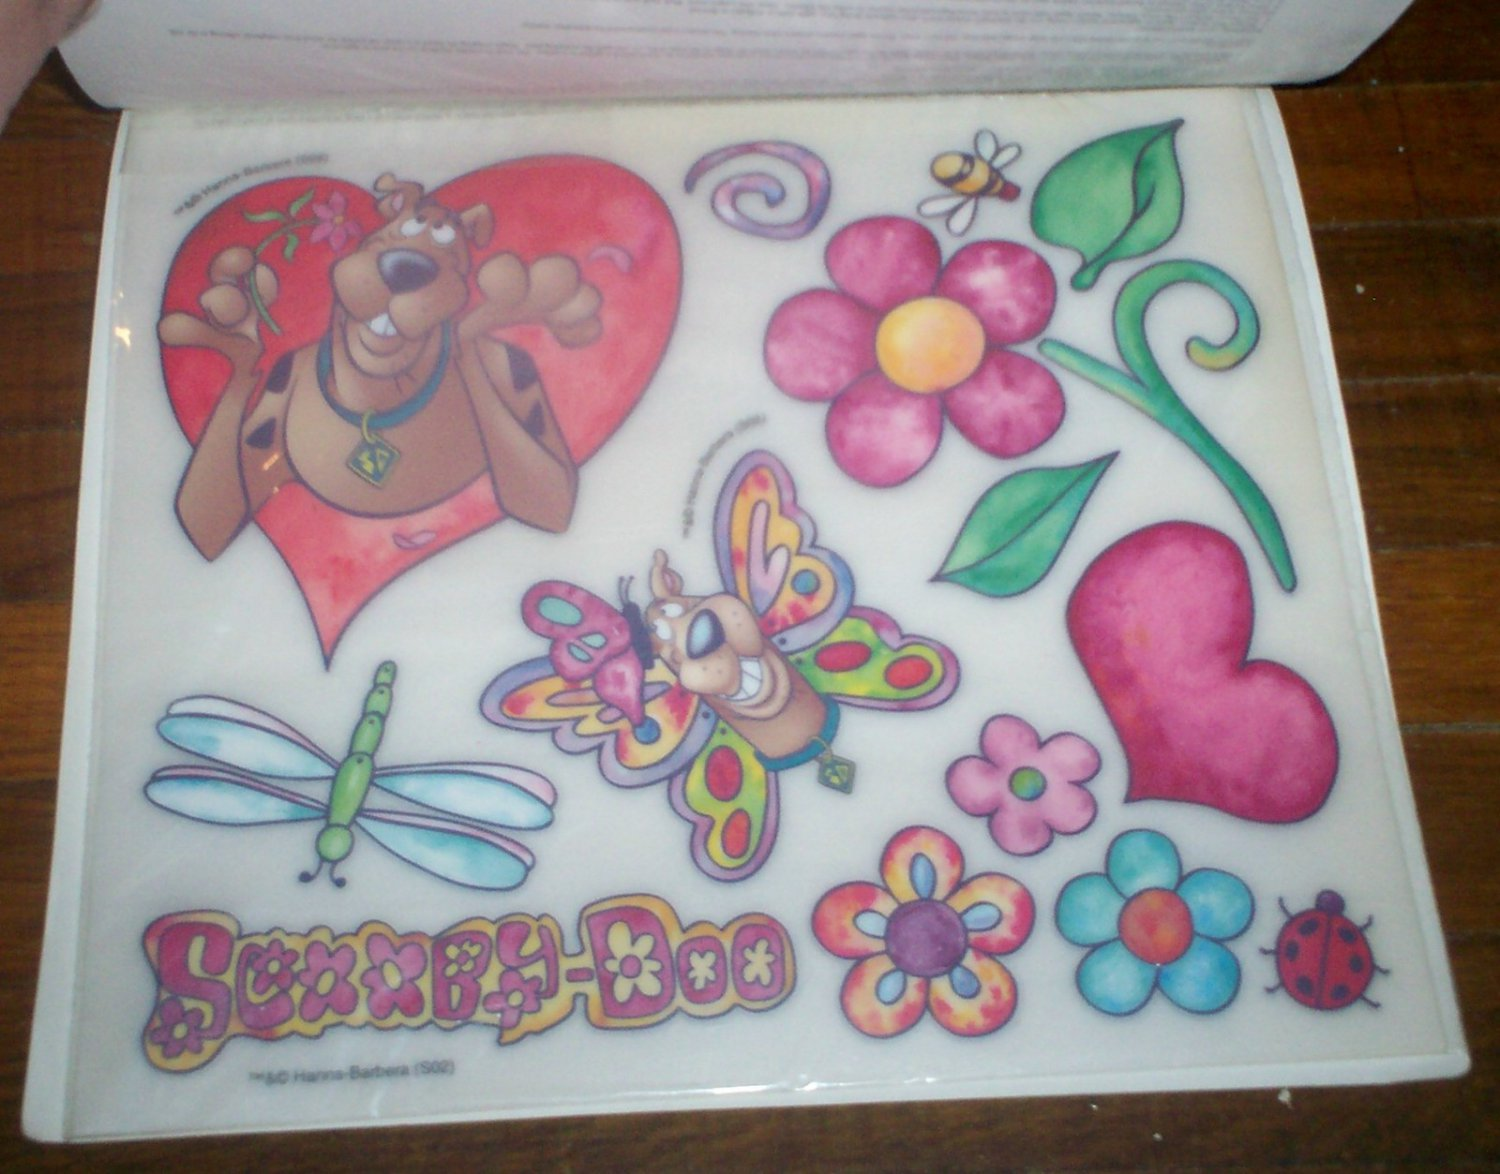 Instant Stencils For Walls : New imperial scooby doo instant stencils